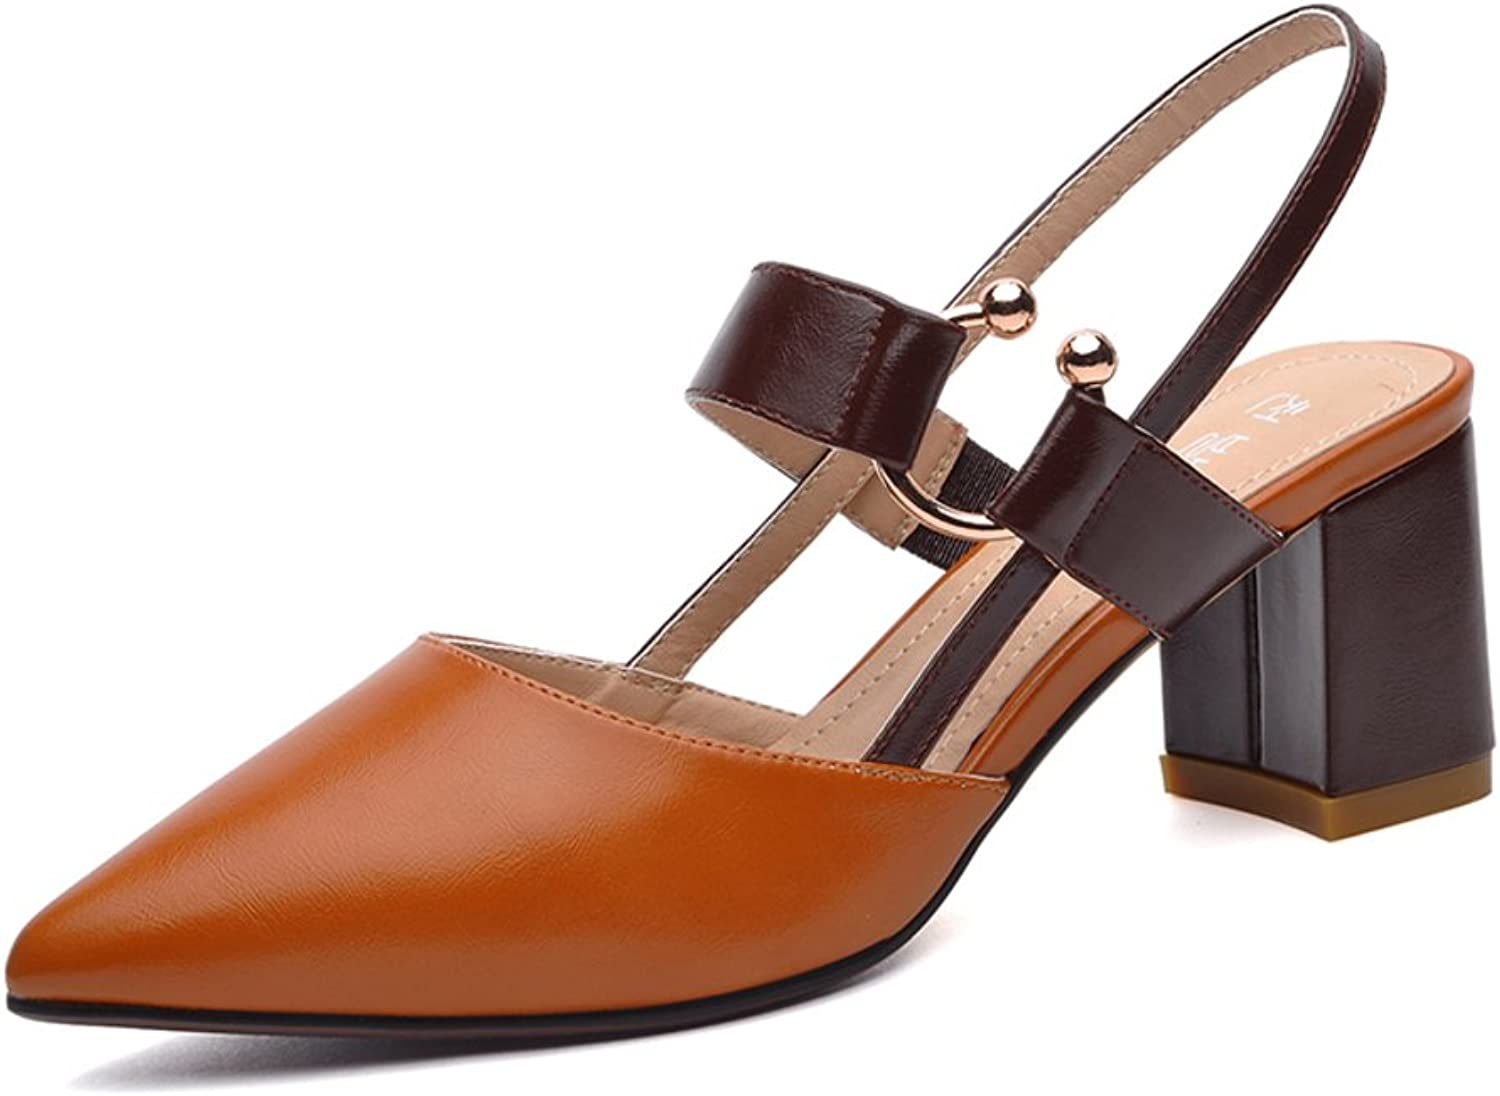 Lady,Summer,Tip Binding Sandals Rough With,Pointed,High Heel